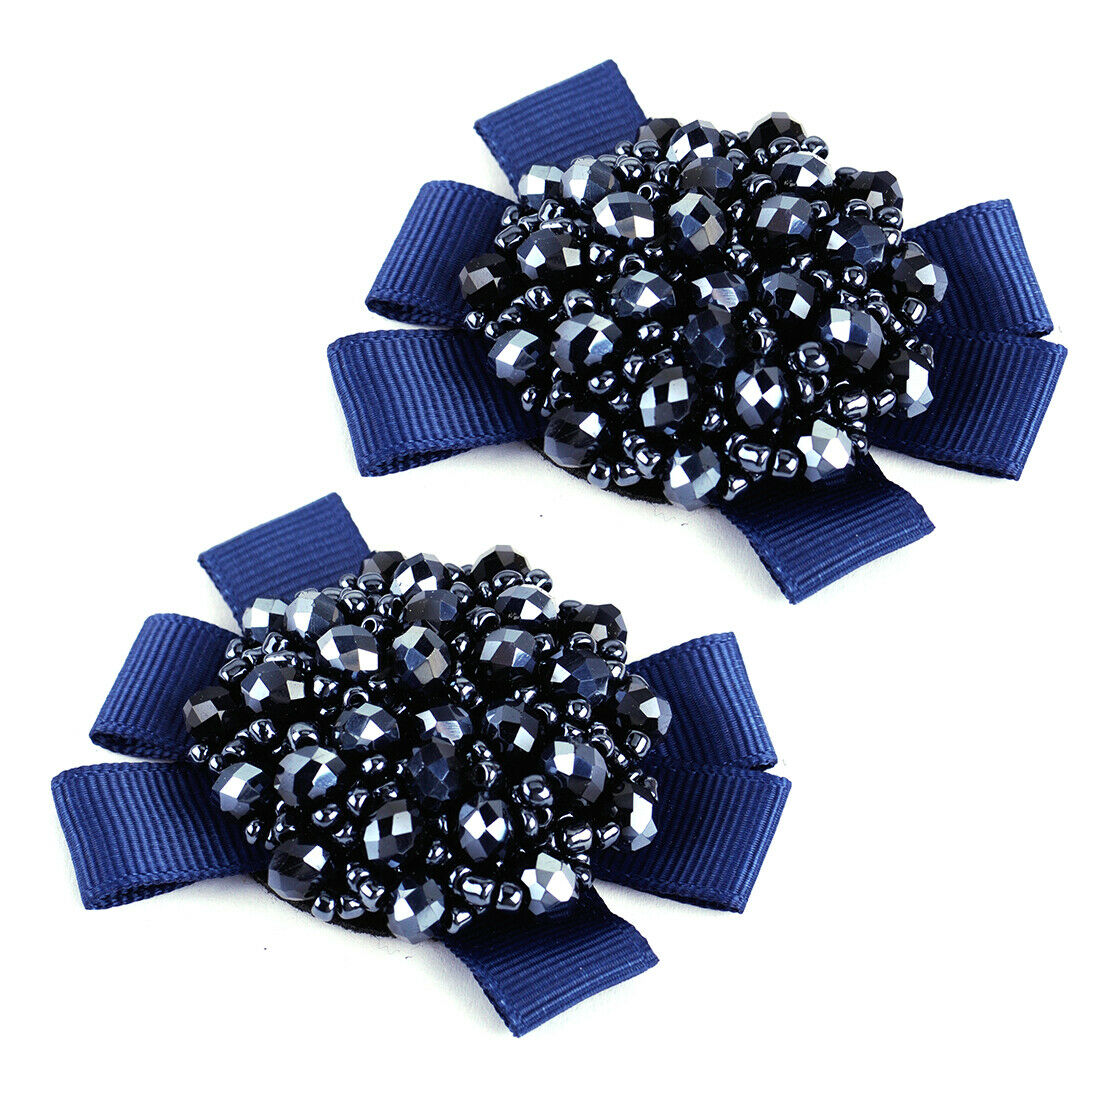 1 Pair Crystal Beads Bows Boot Shoe Clips Women Kids Girls Sandal Accessories ym